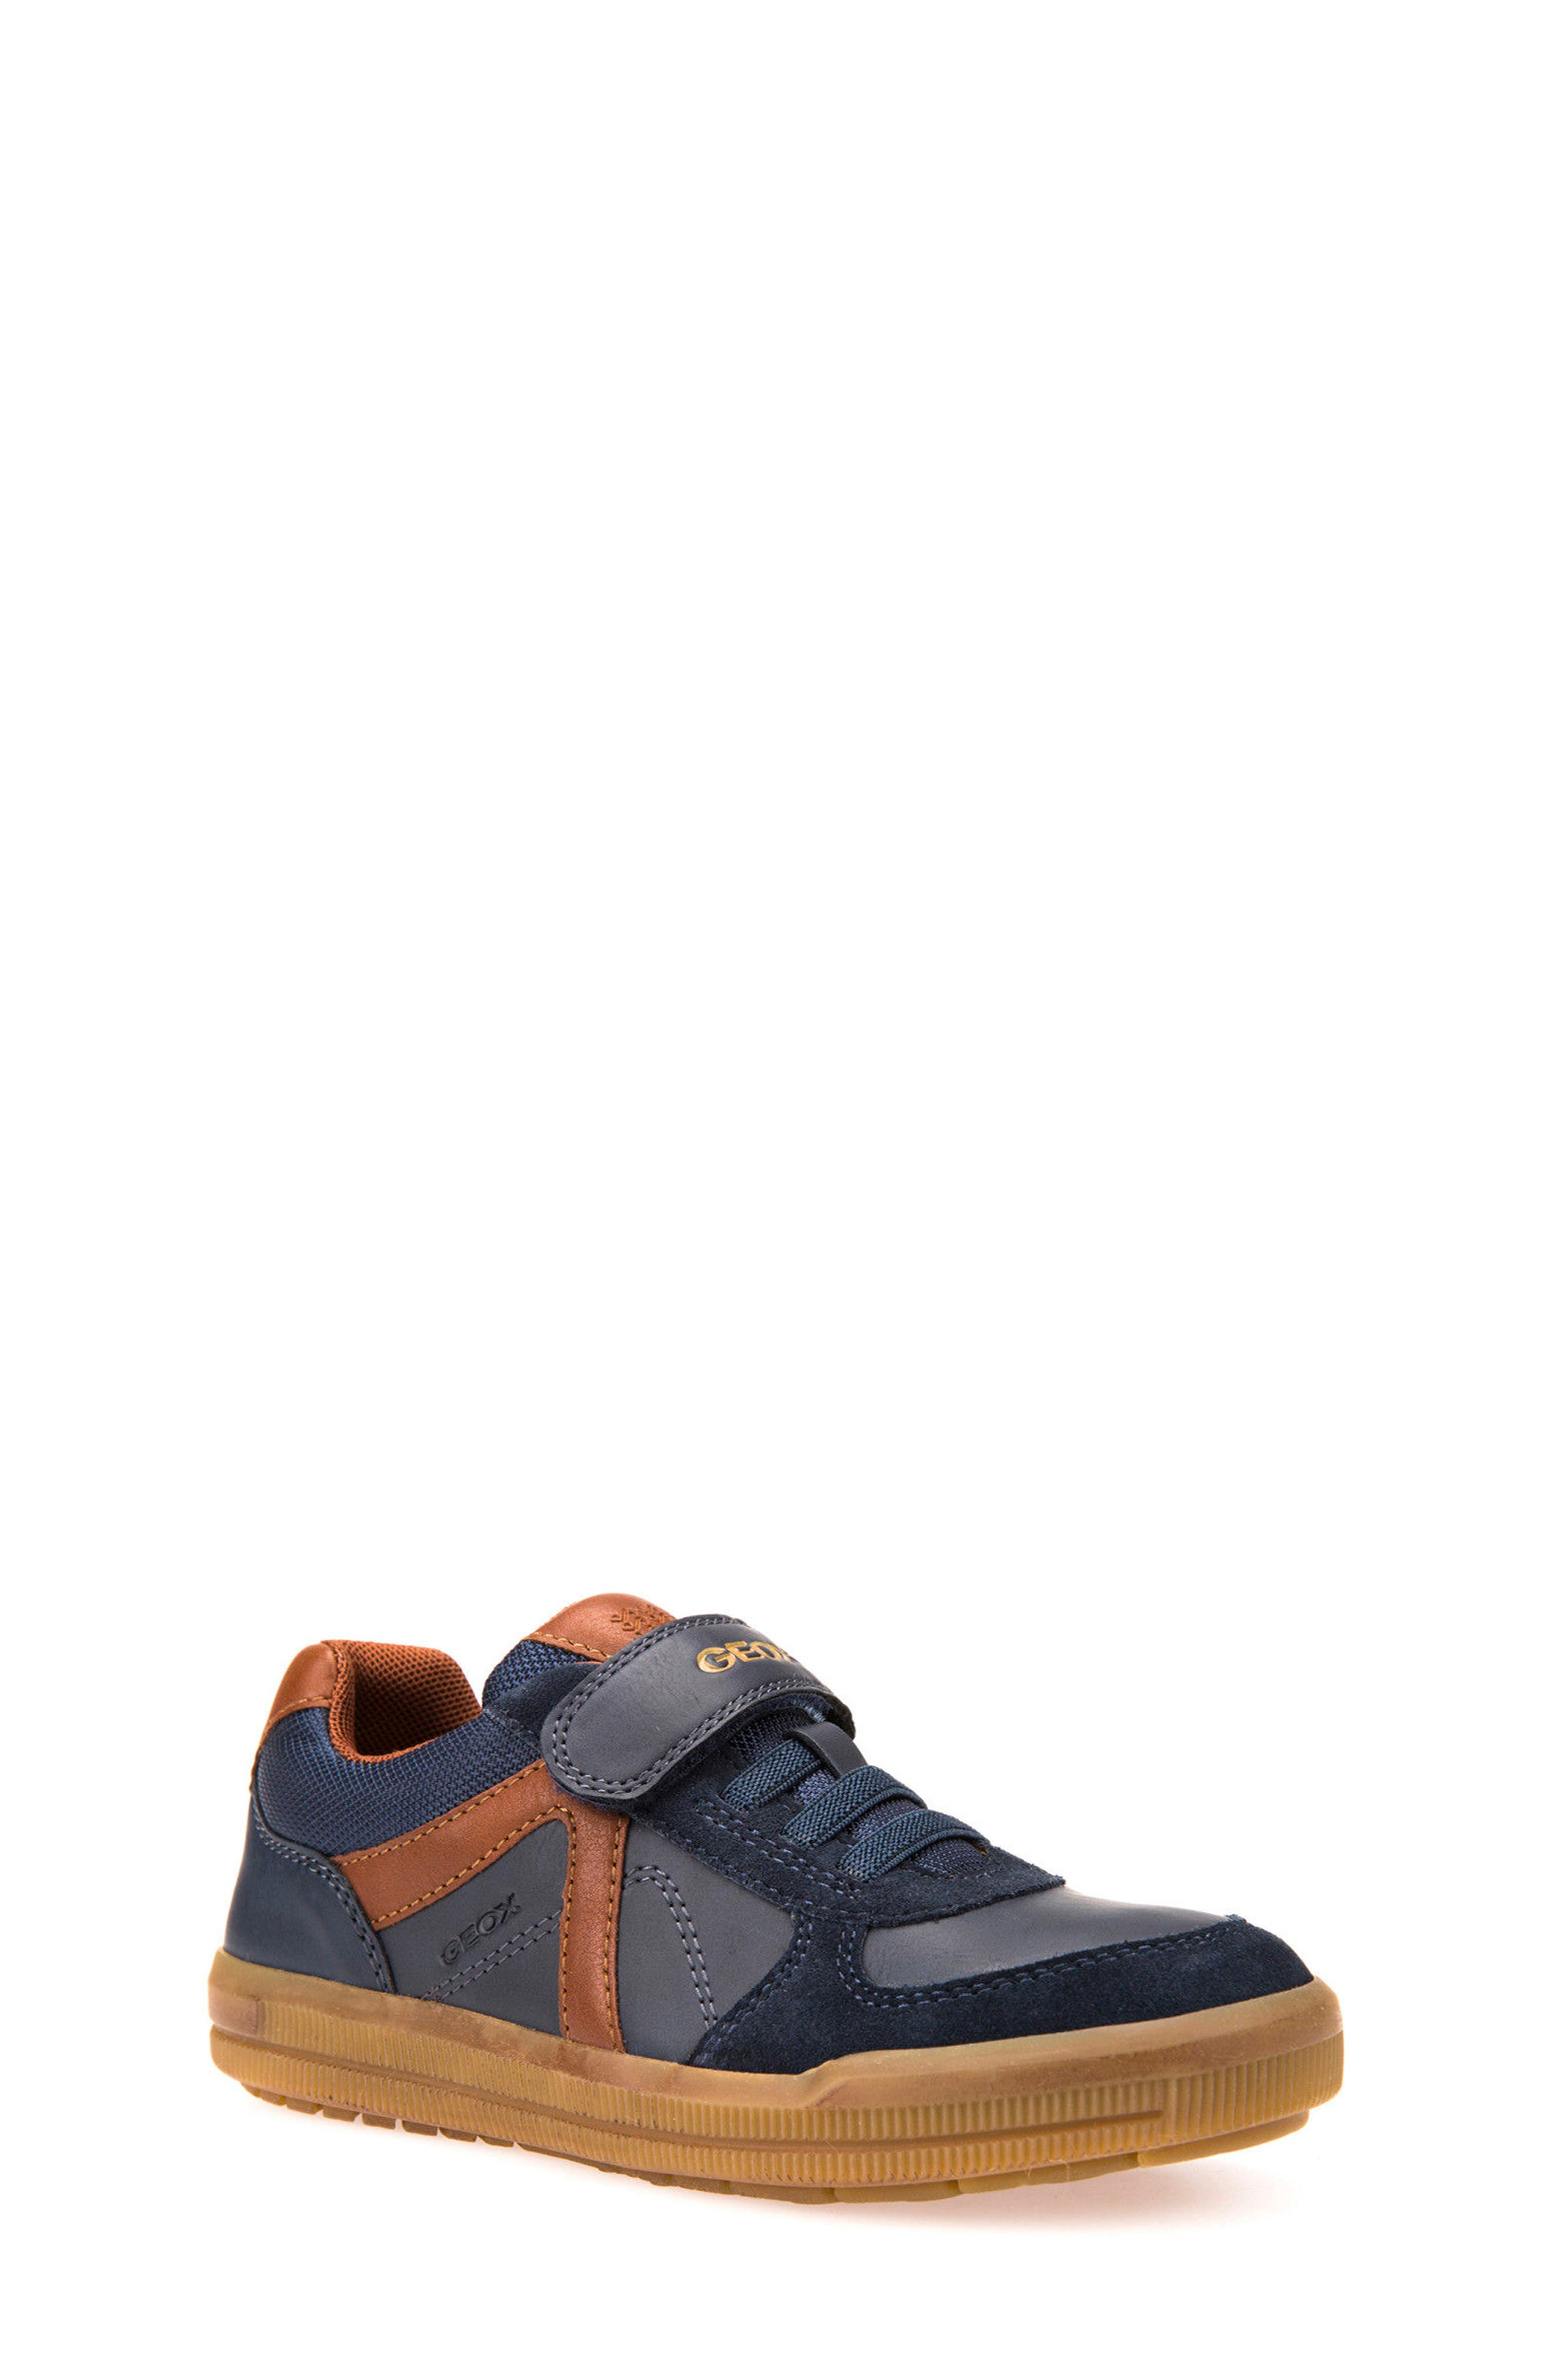 Arzach Low Top Sneaker,                             Main thumbnail 1, color,                             Navy/ Brown